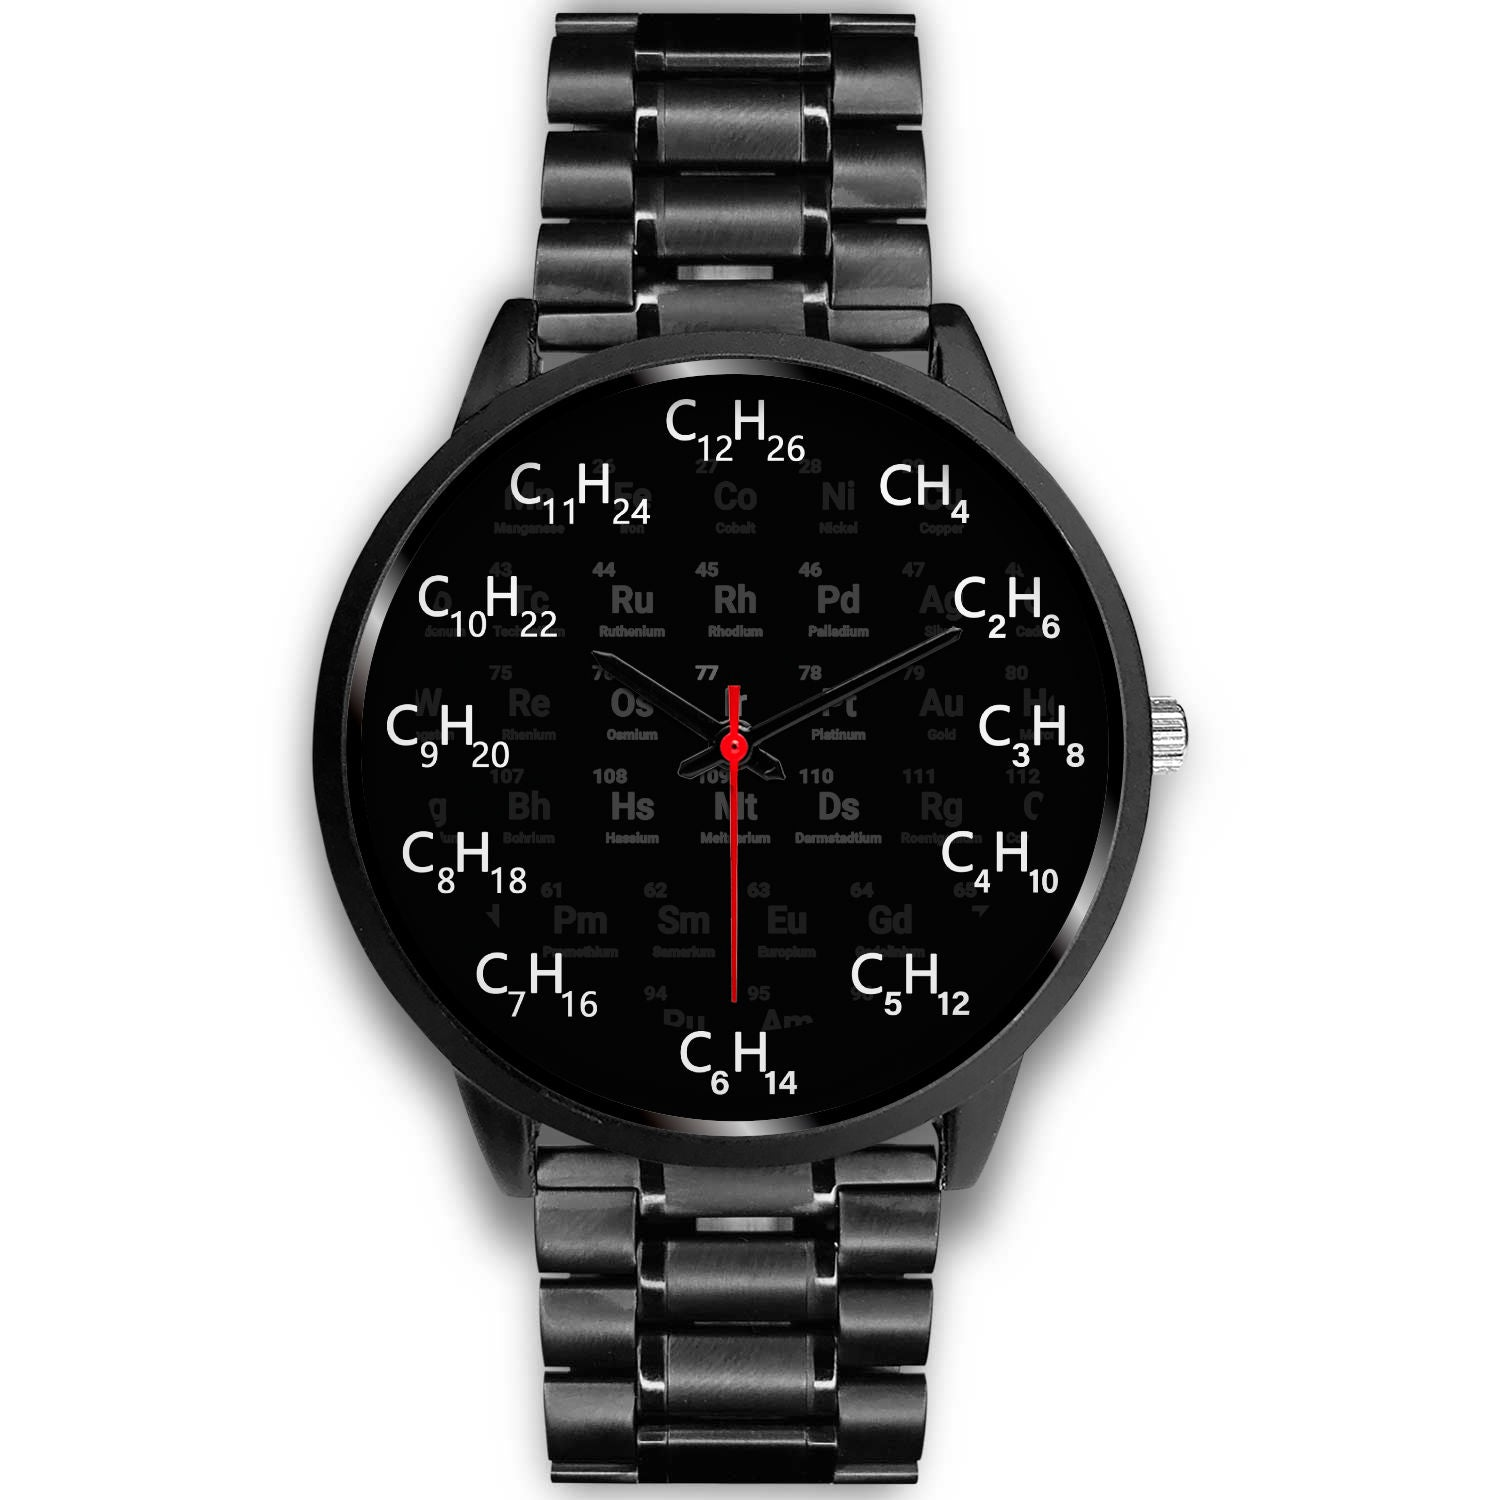 VIRA chemical formula black stainless steel watch for awesome teachers